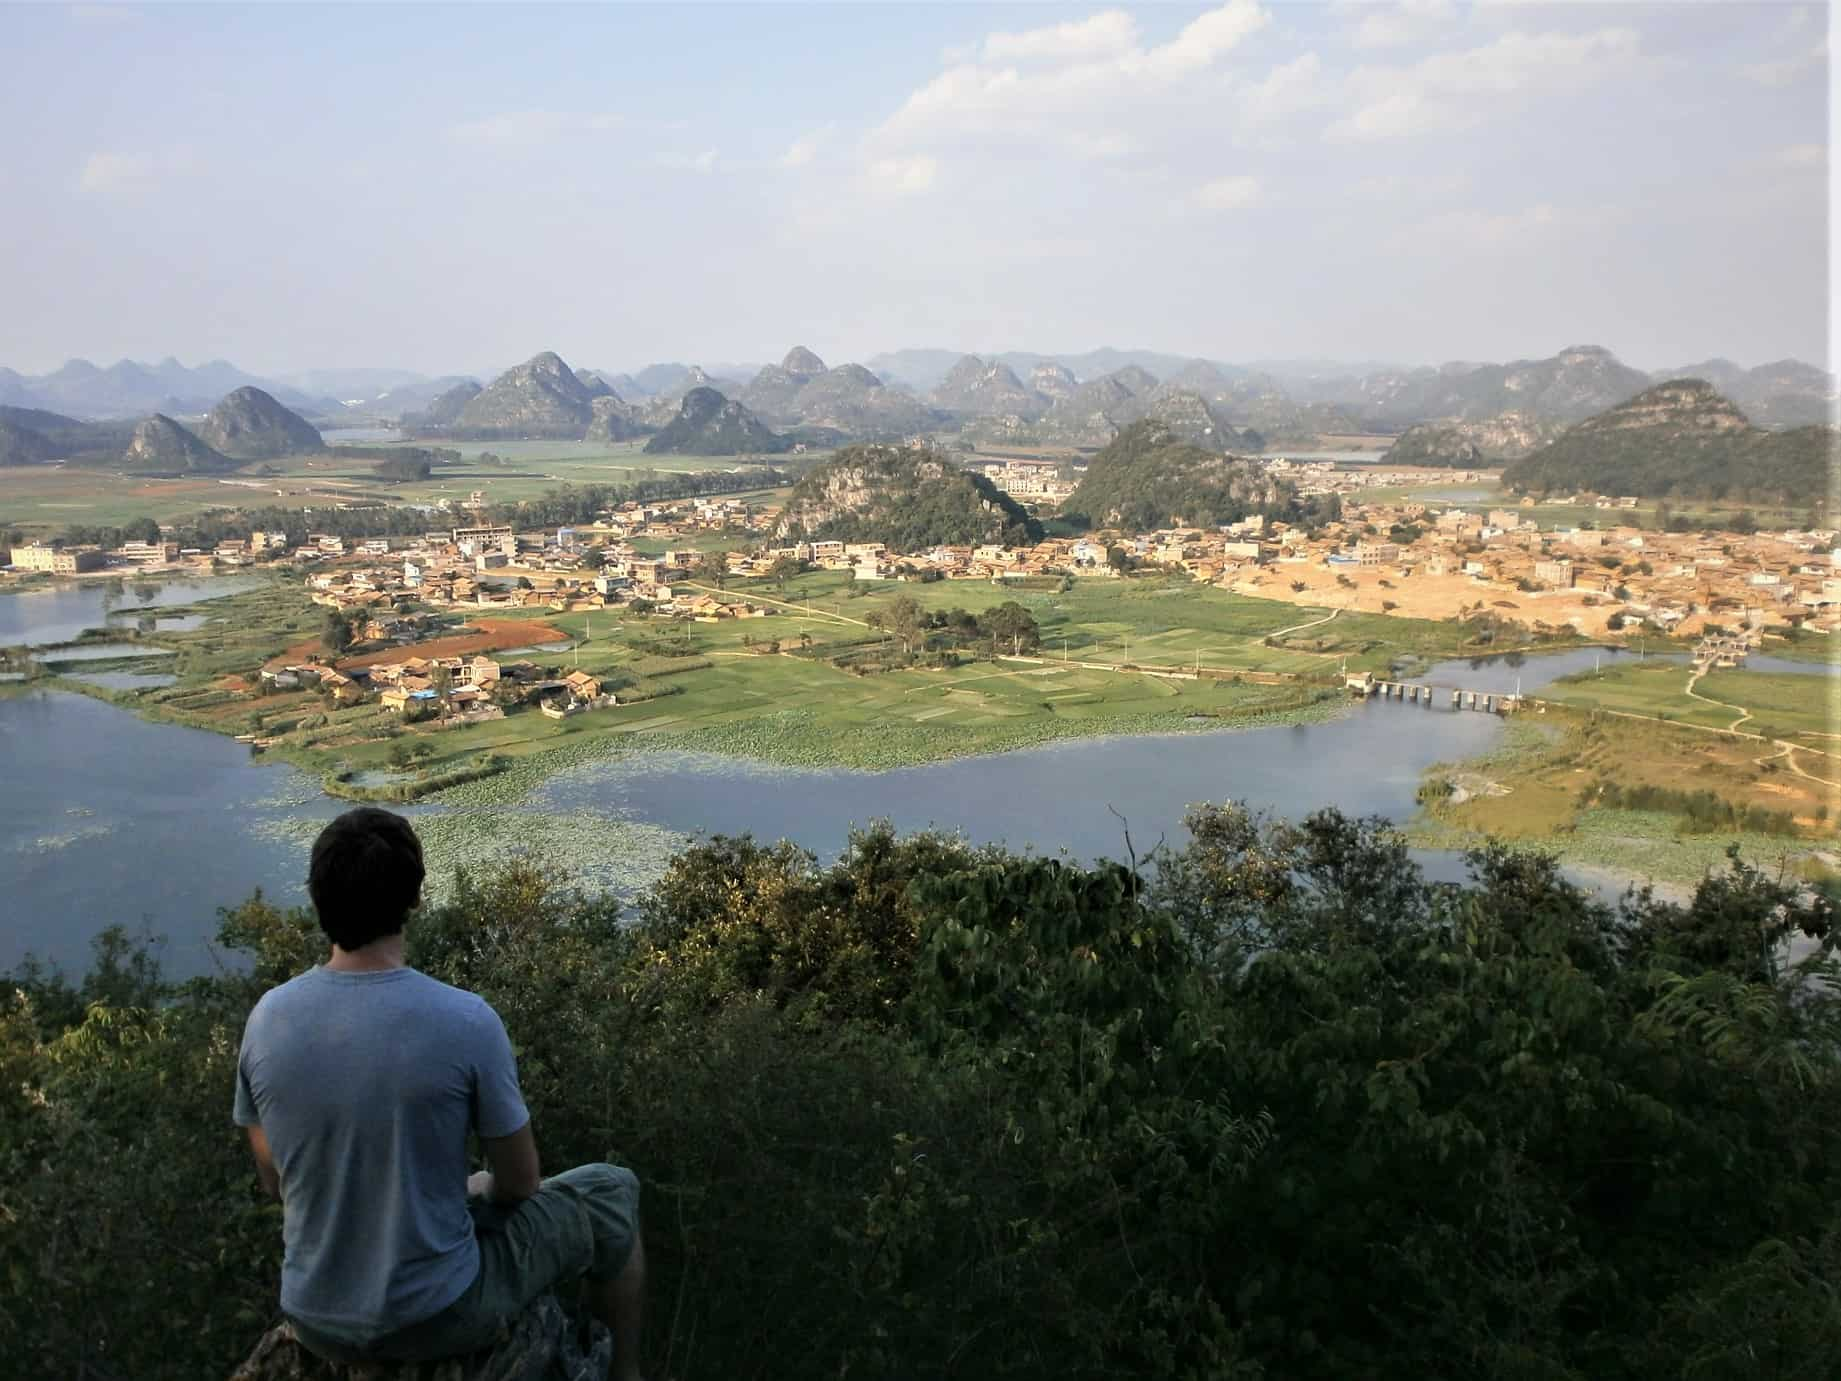 Yunnan Puzhehei - Trip to Yunnan: 12 days in China with all included!